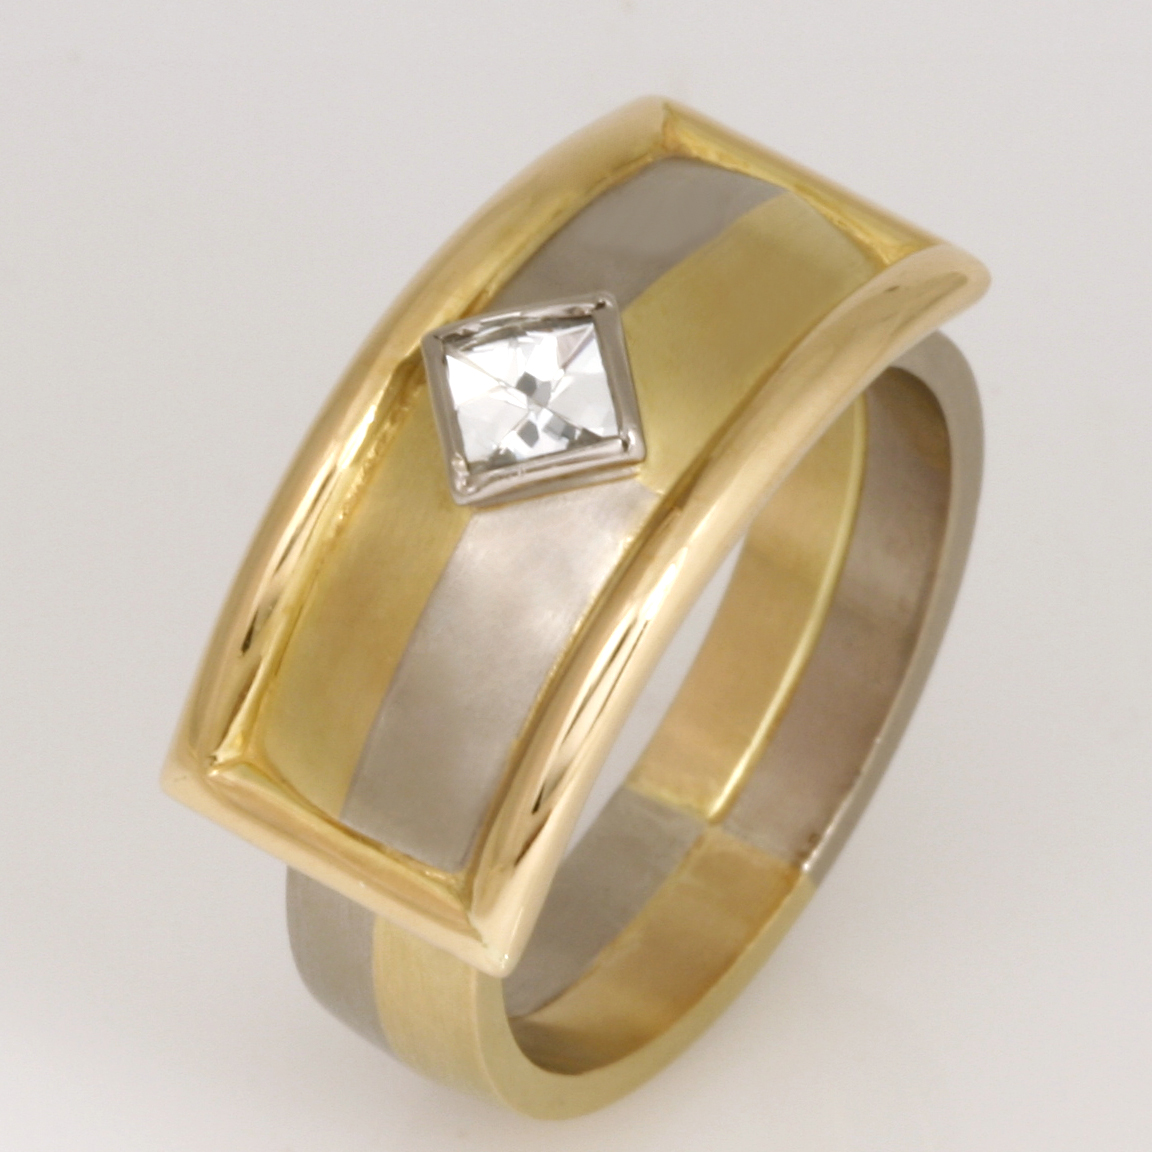 "R055 18ct yellow and white gold Archie style ring featuring a 3.5mm square high reflection cut diamond. Size ""M 1/2""  $3975"